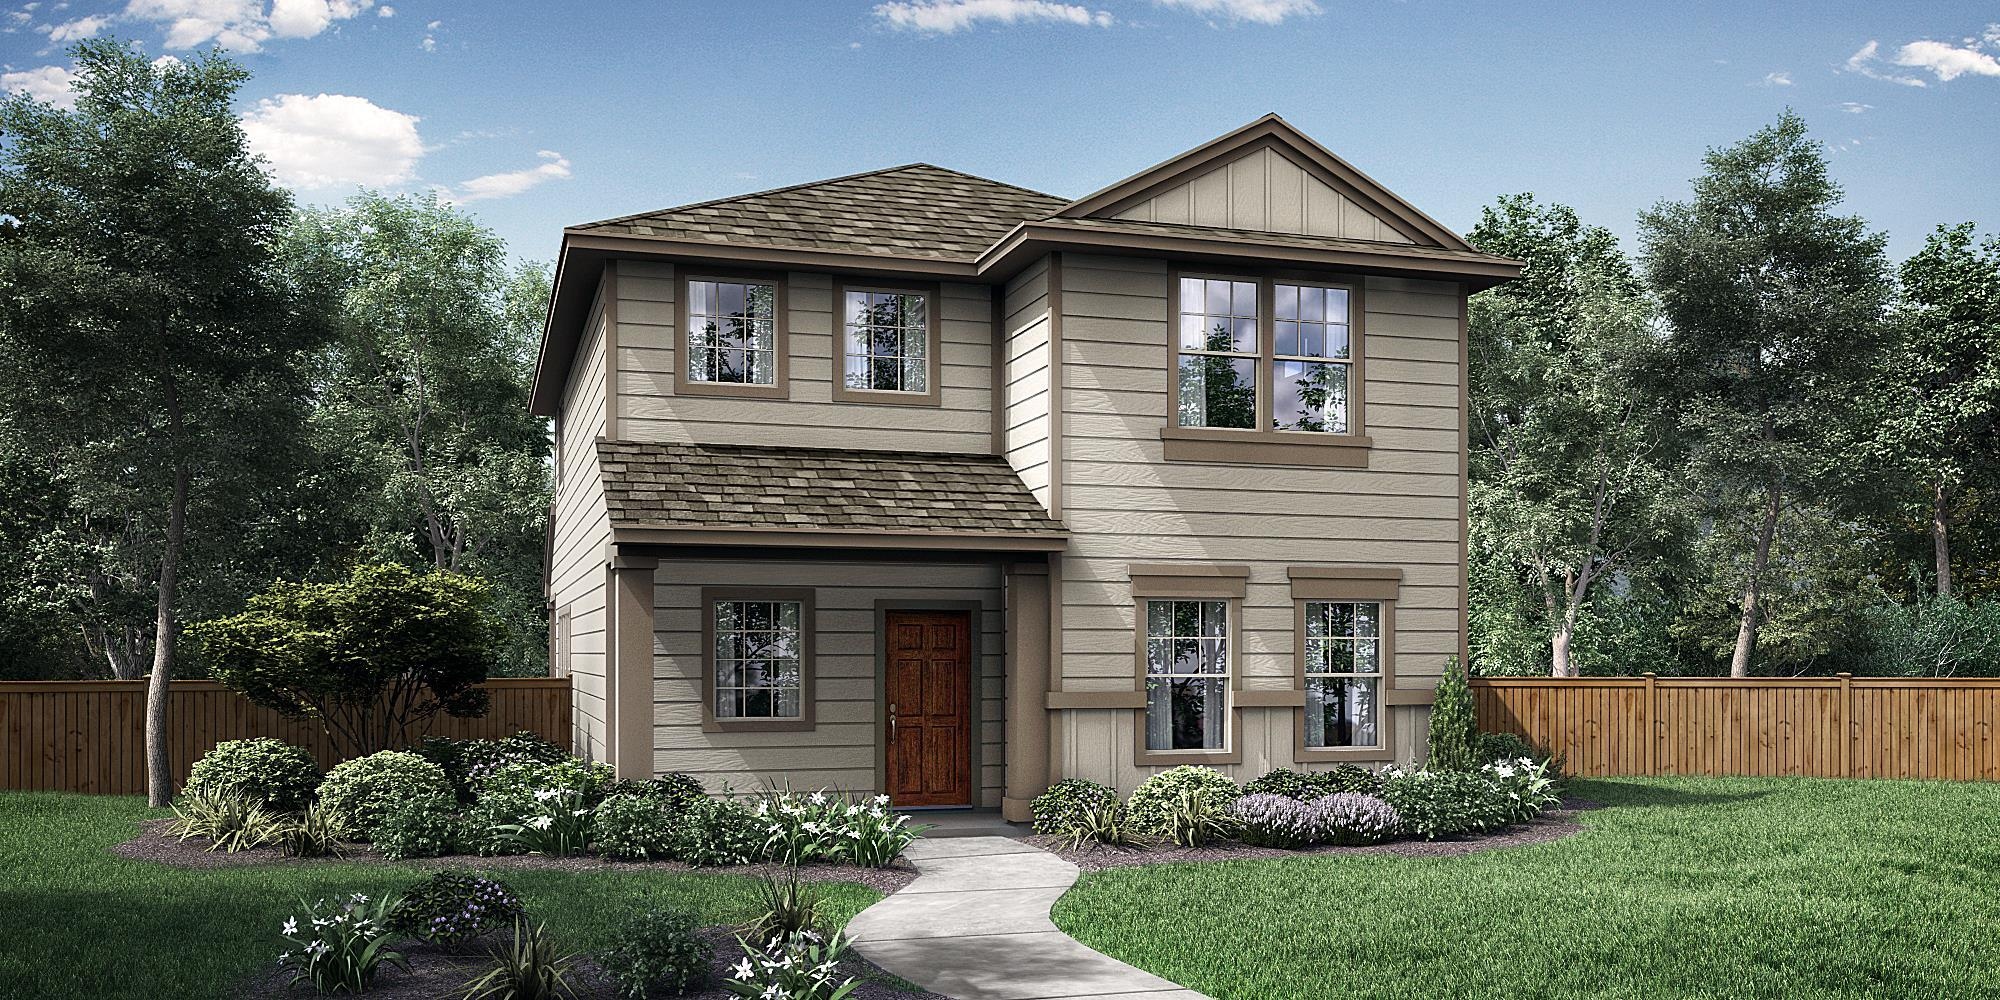 New Construction Homes & Plans in Austin, TX   7,343 Homes